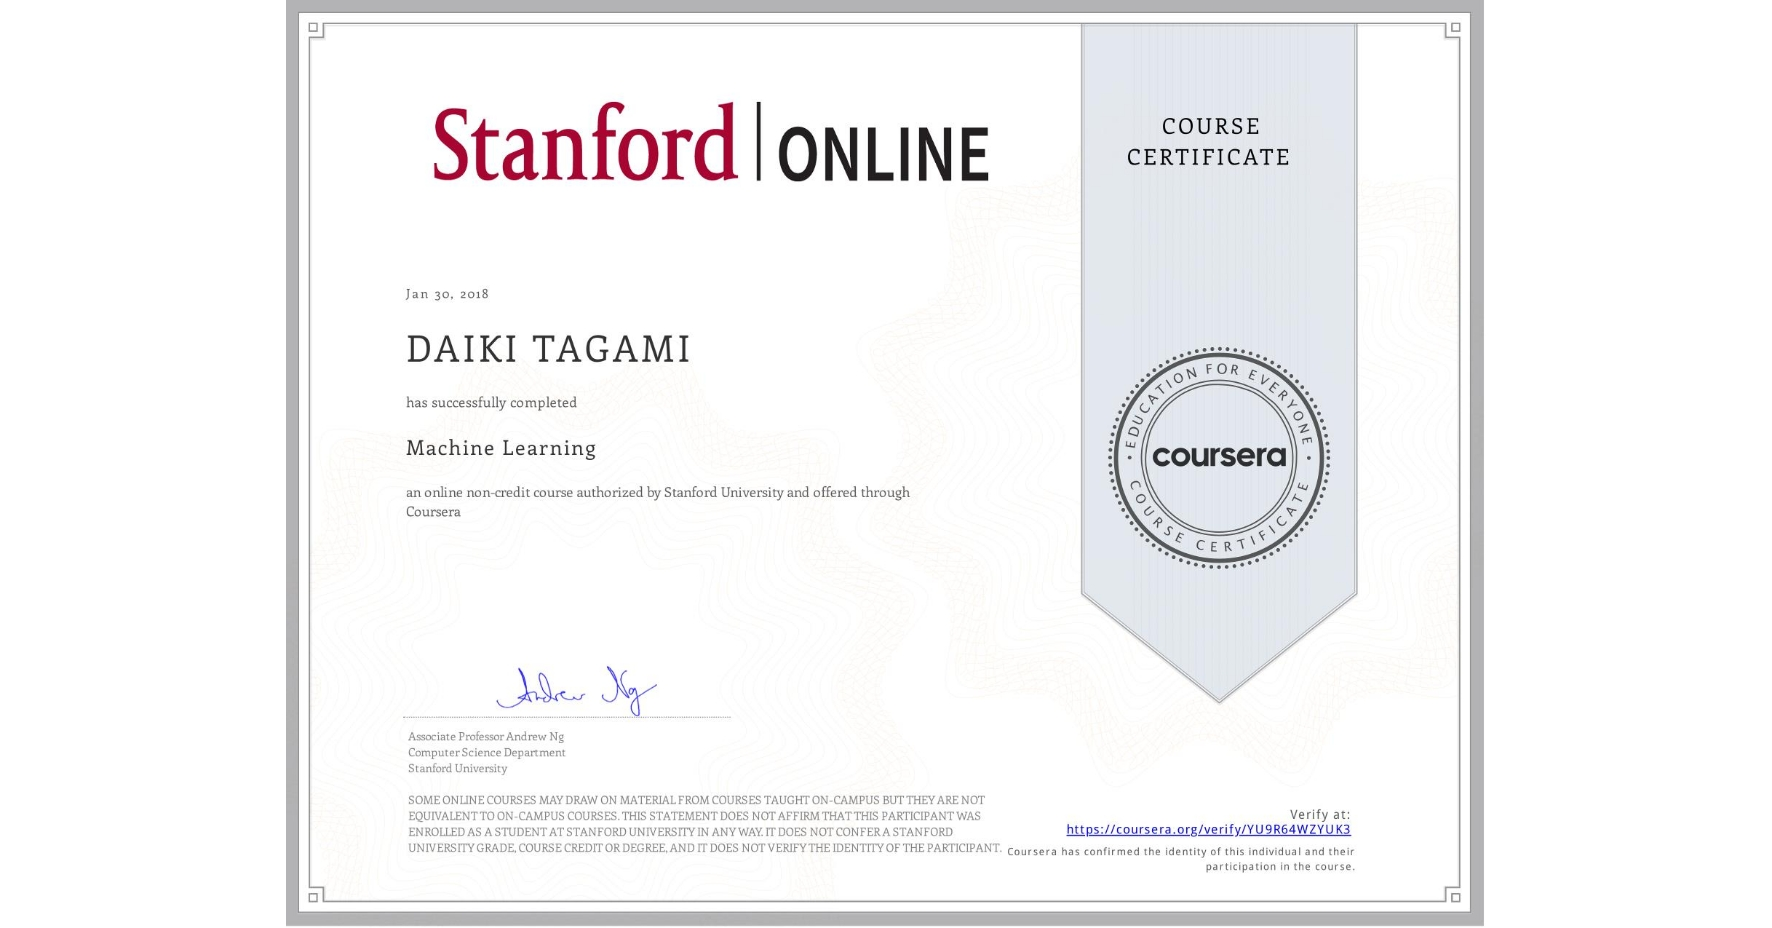 View certificate for DAIKI TAGAMI, Machine Learning, an online non-credit course authorized by Stanford University and offered through Coursera